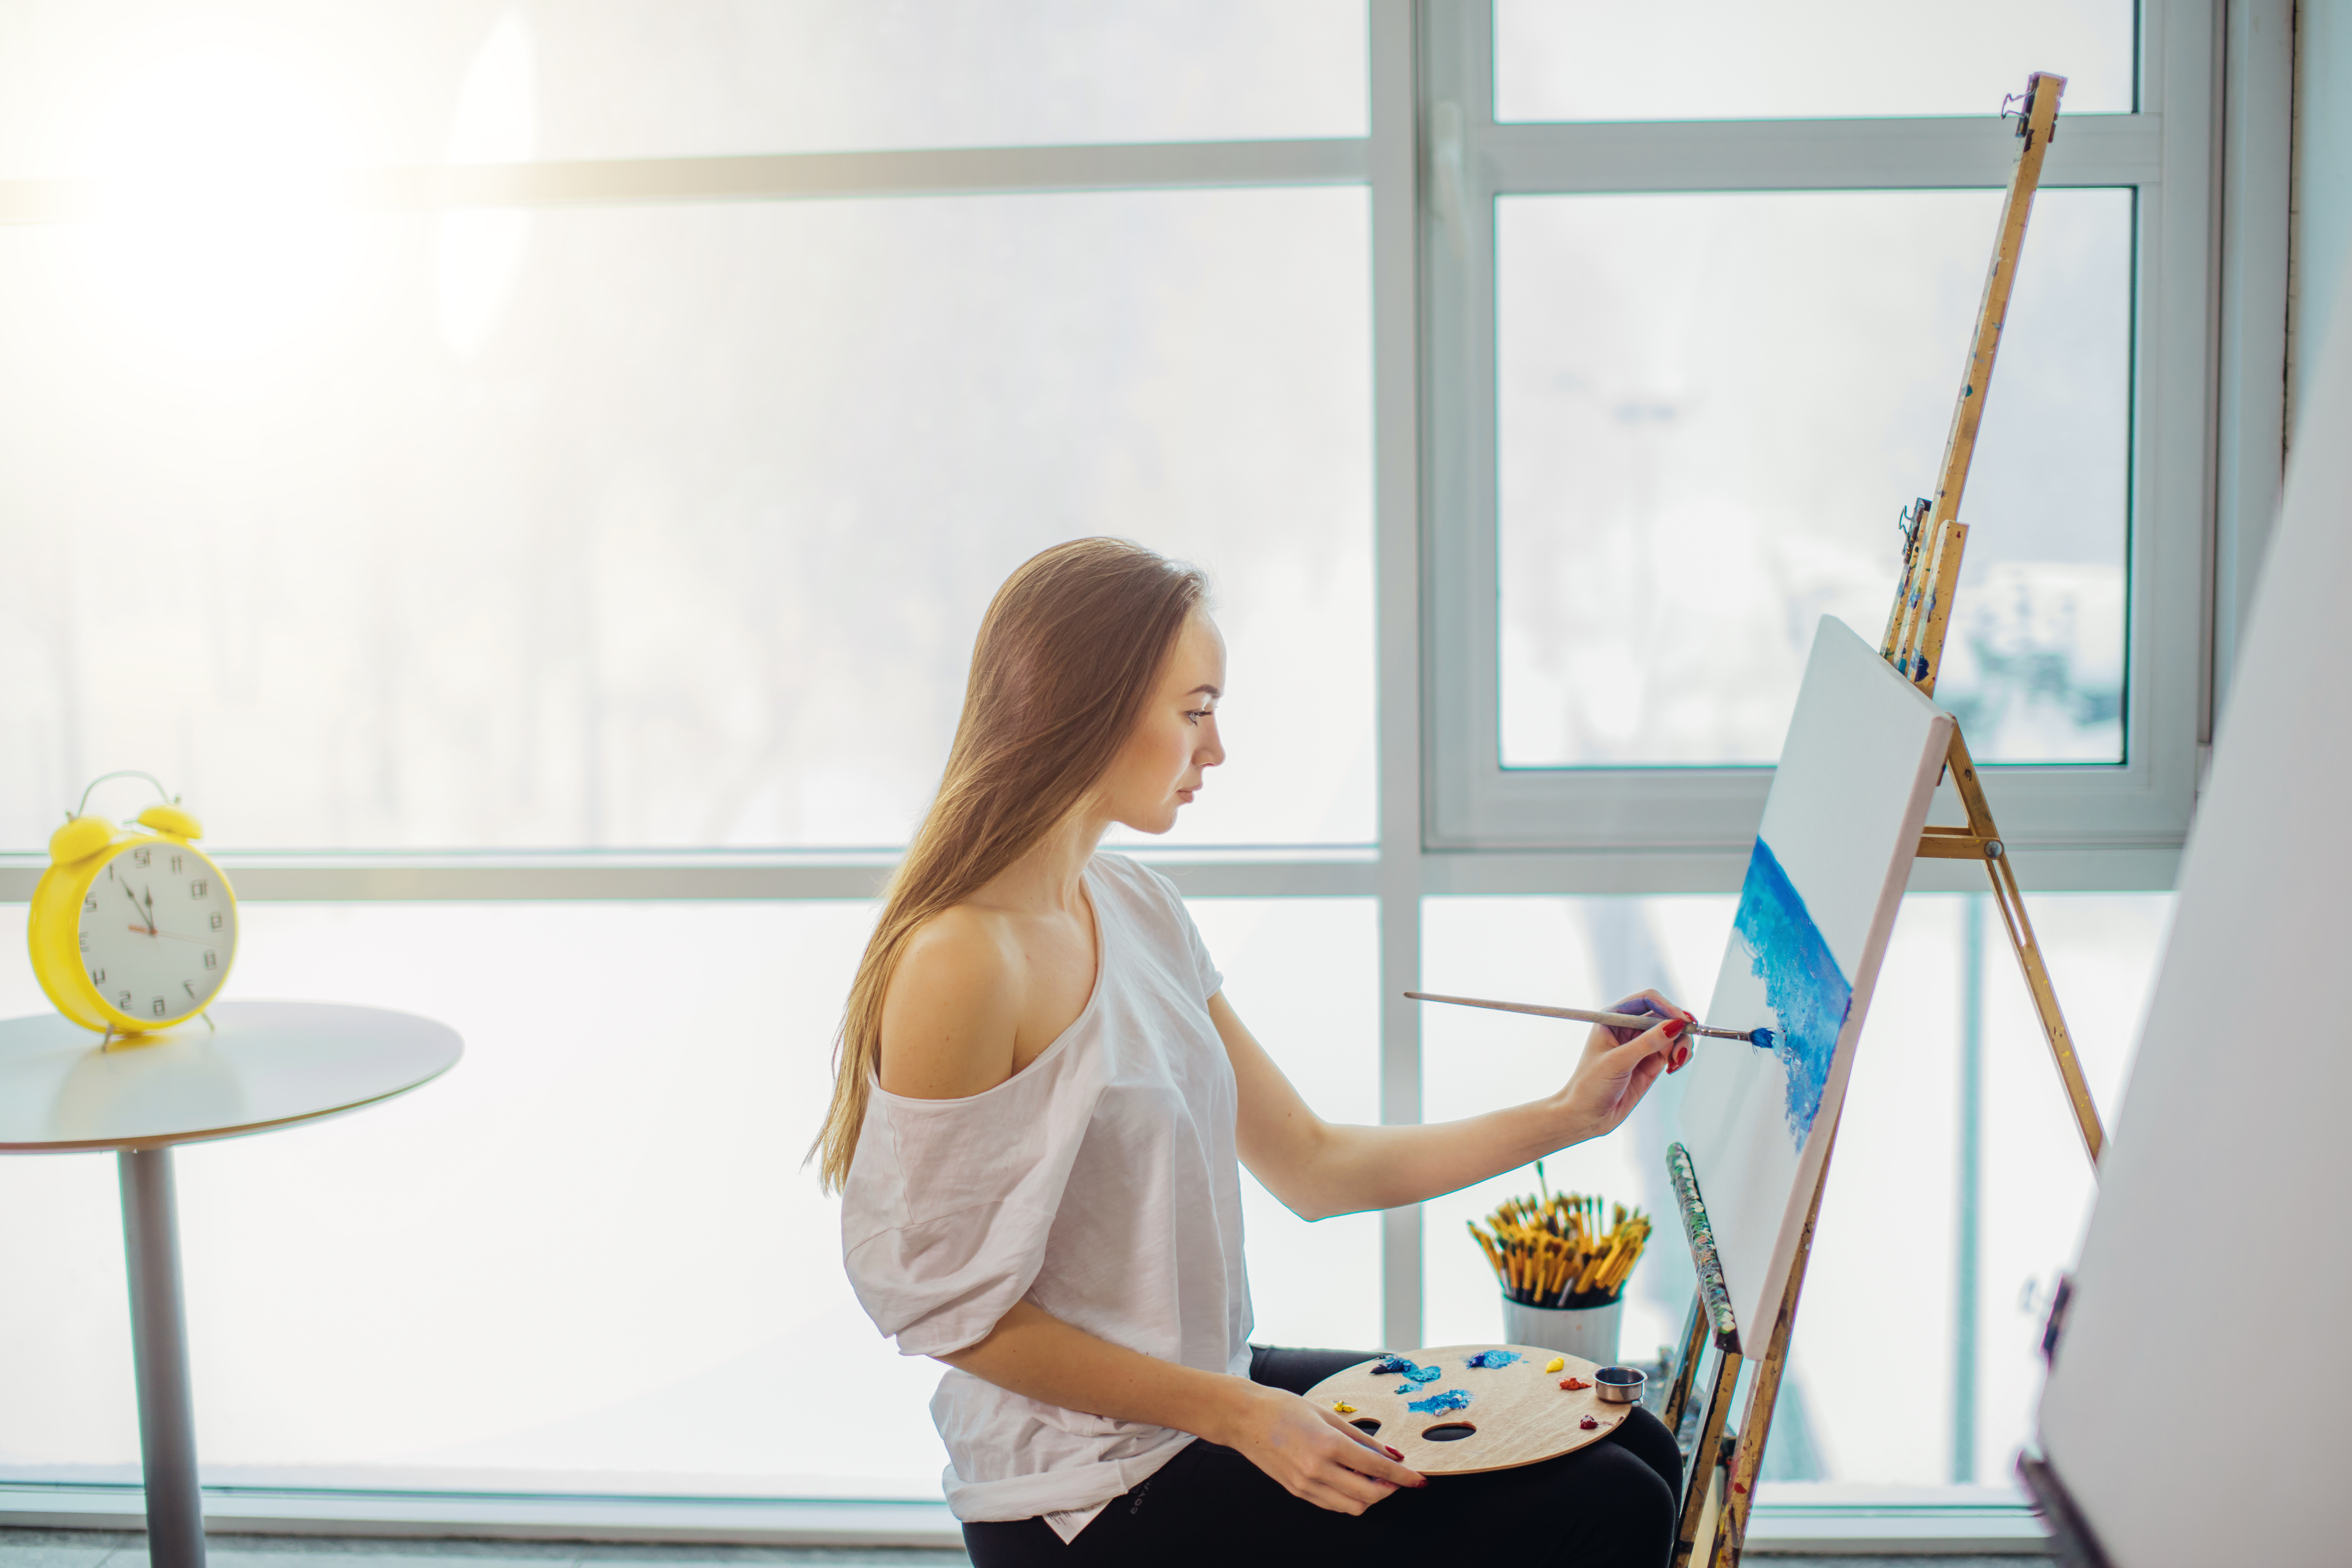 Could you be earning more from using your talents?